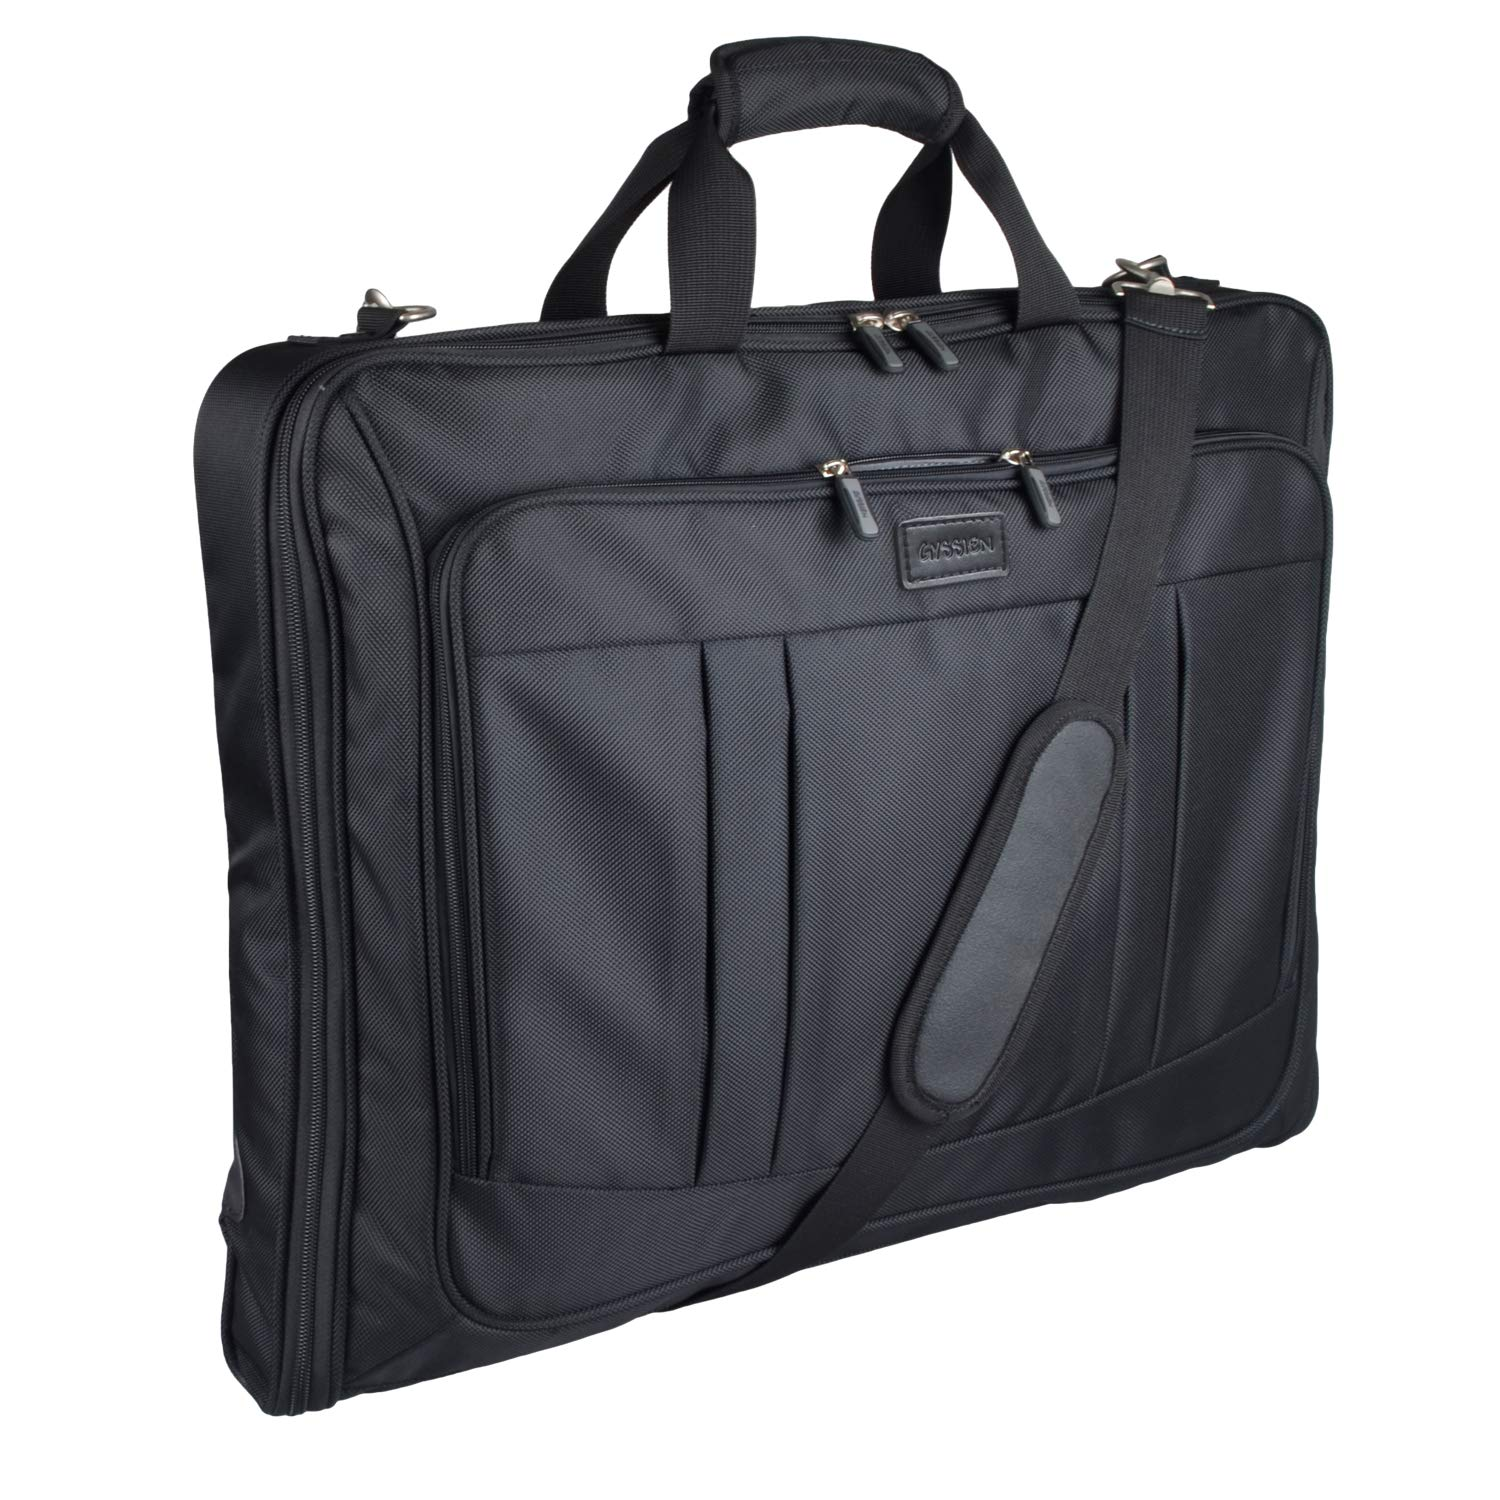 Foldable Carry On Garment Bag Fit 3 Suits, 44,inch Suit Bag for Travel and  Business Trips with Shoulder Strap